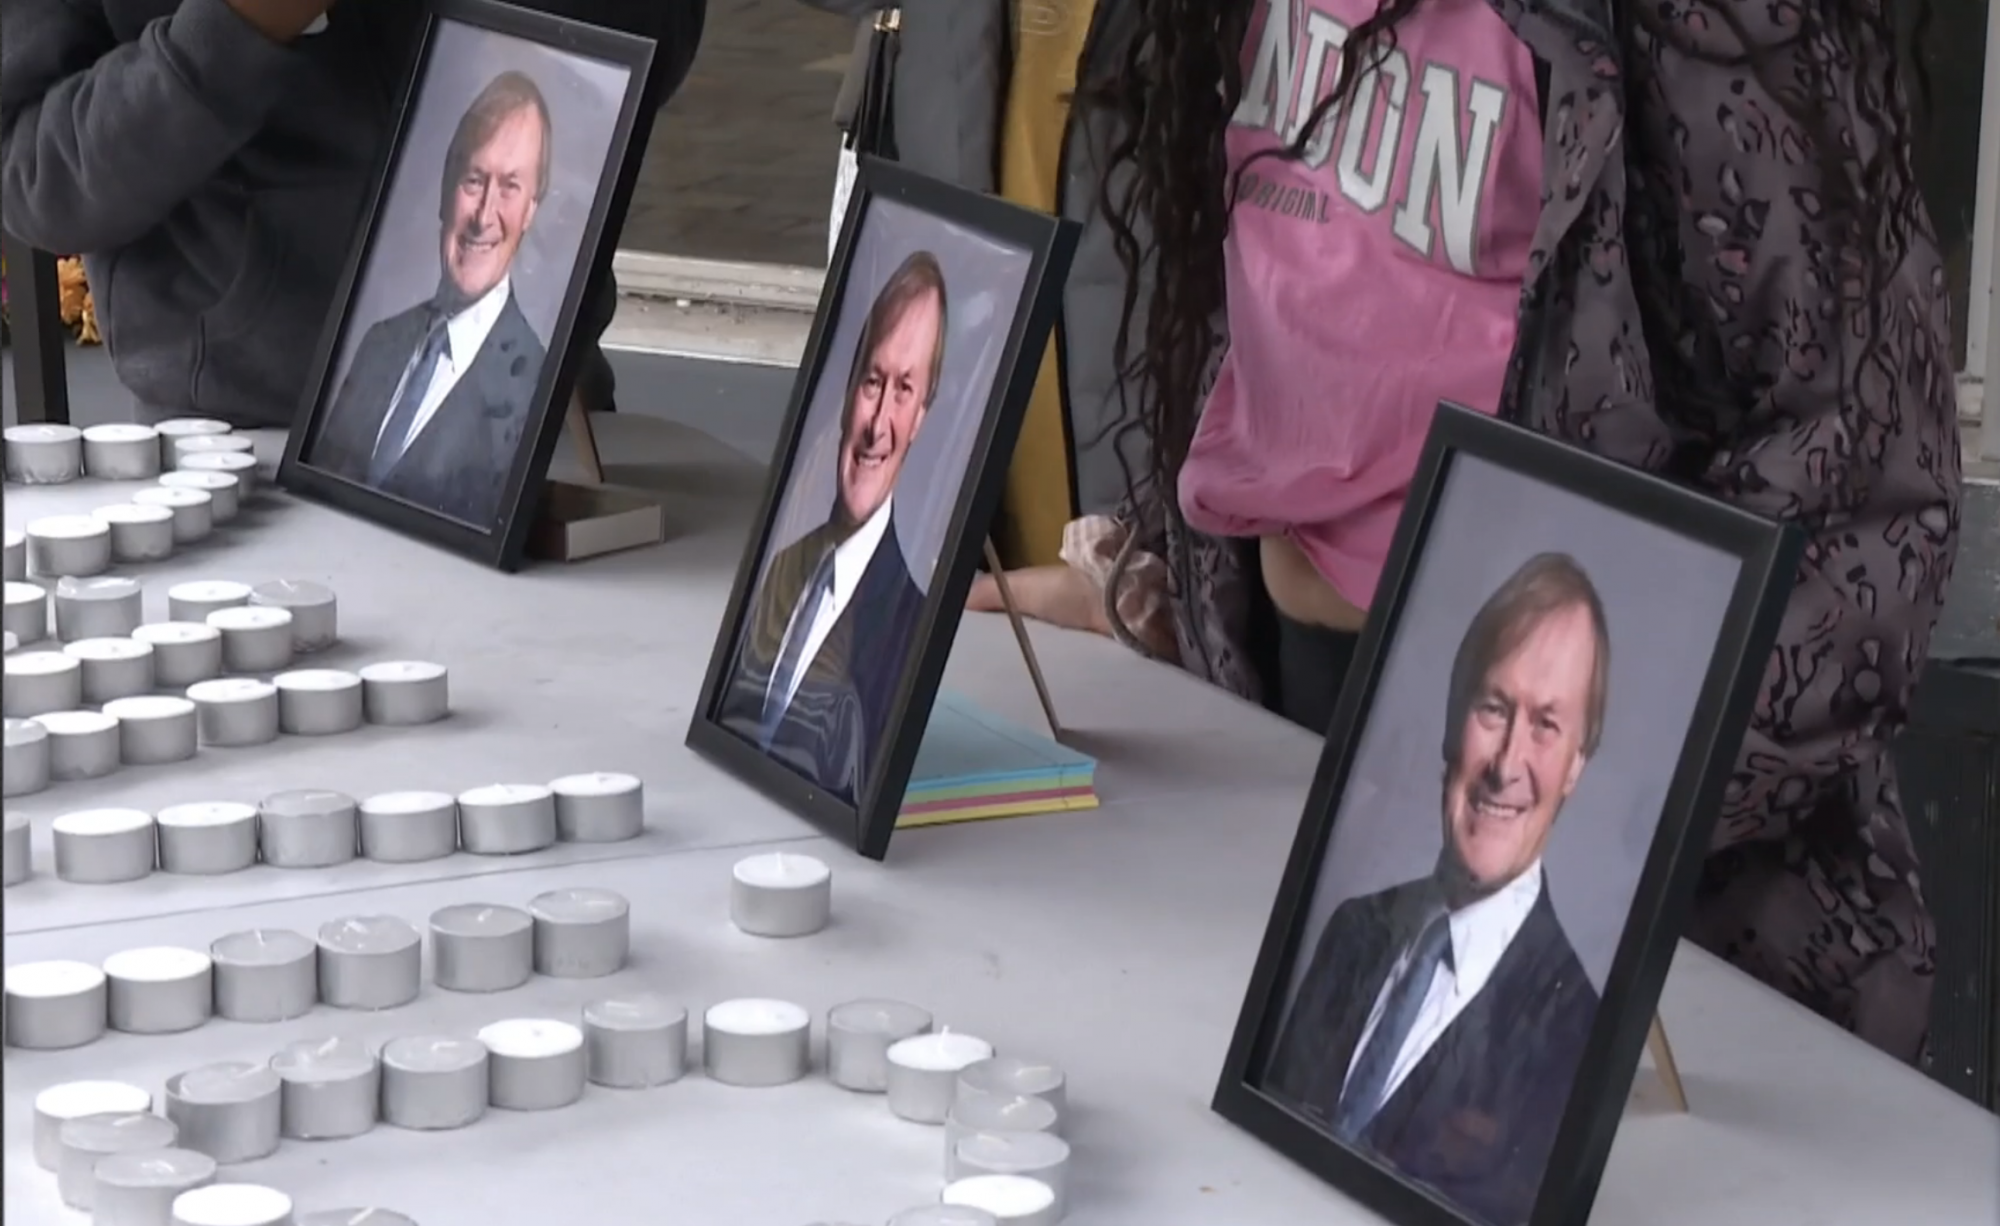 Political leaders pay tribute to Sir David Amess - channel 4